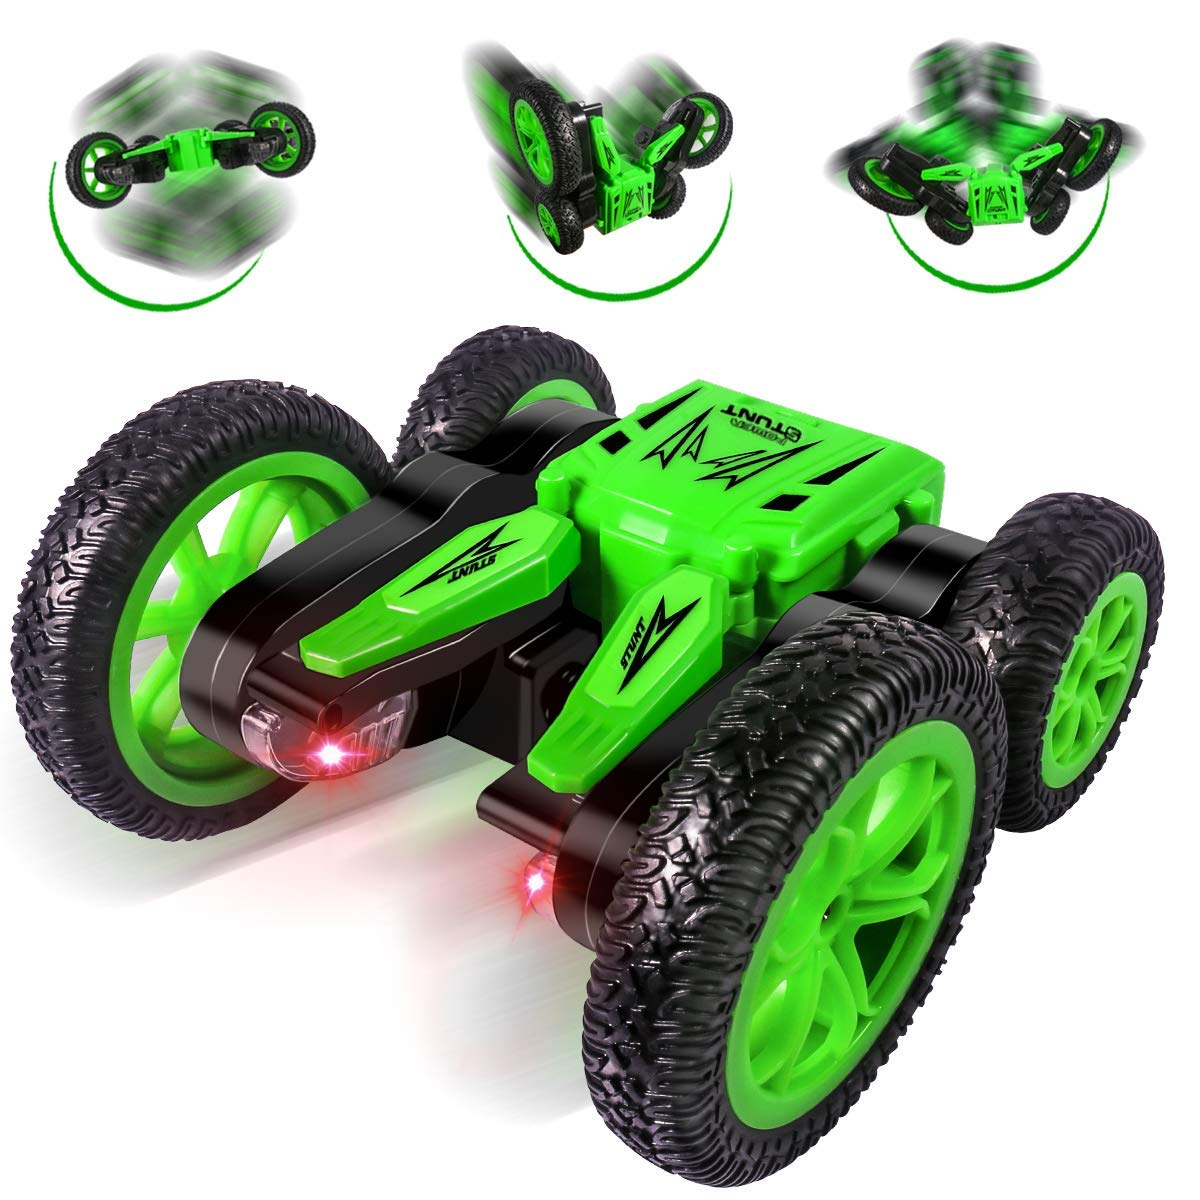 Remote Control Car, Durable RC Stunt Cars Toys for Kids, RC Cars 4WD 2.4GHz Stunt Car Double Sided 360° Flips with Dual-Color Headlights for Kids Xmas Toy Cars for Boys/Girls